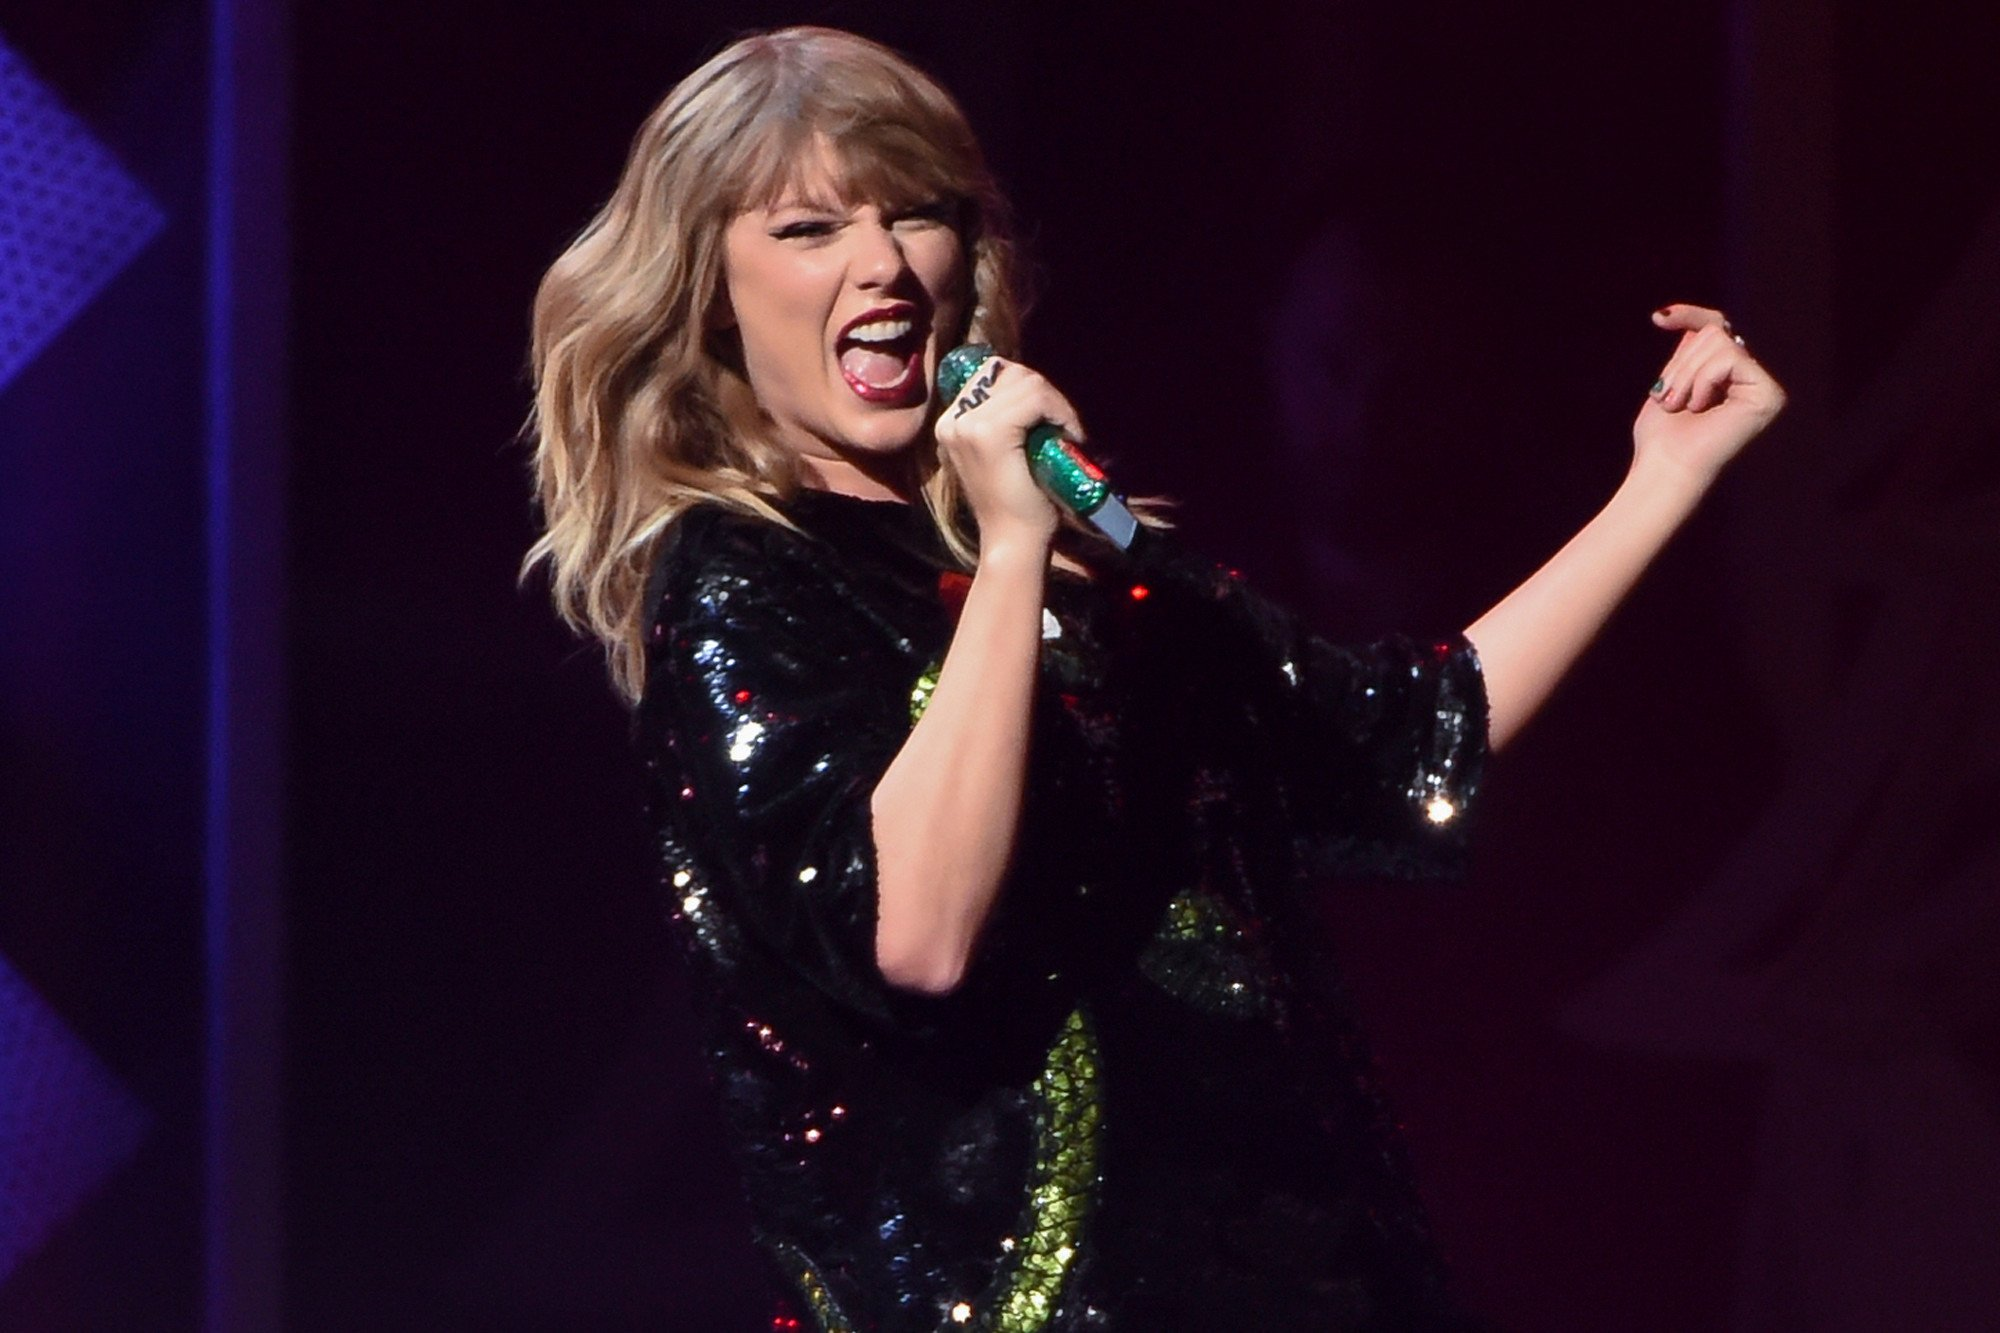 Taylor Swift's 'Reputation' tour shaping up to be a disaster